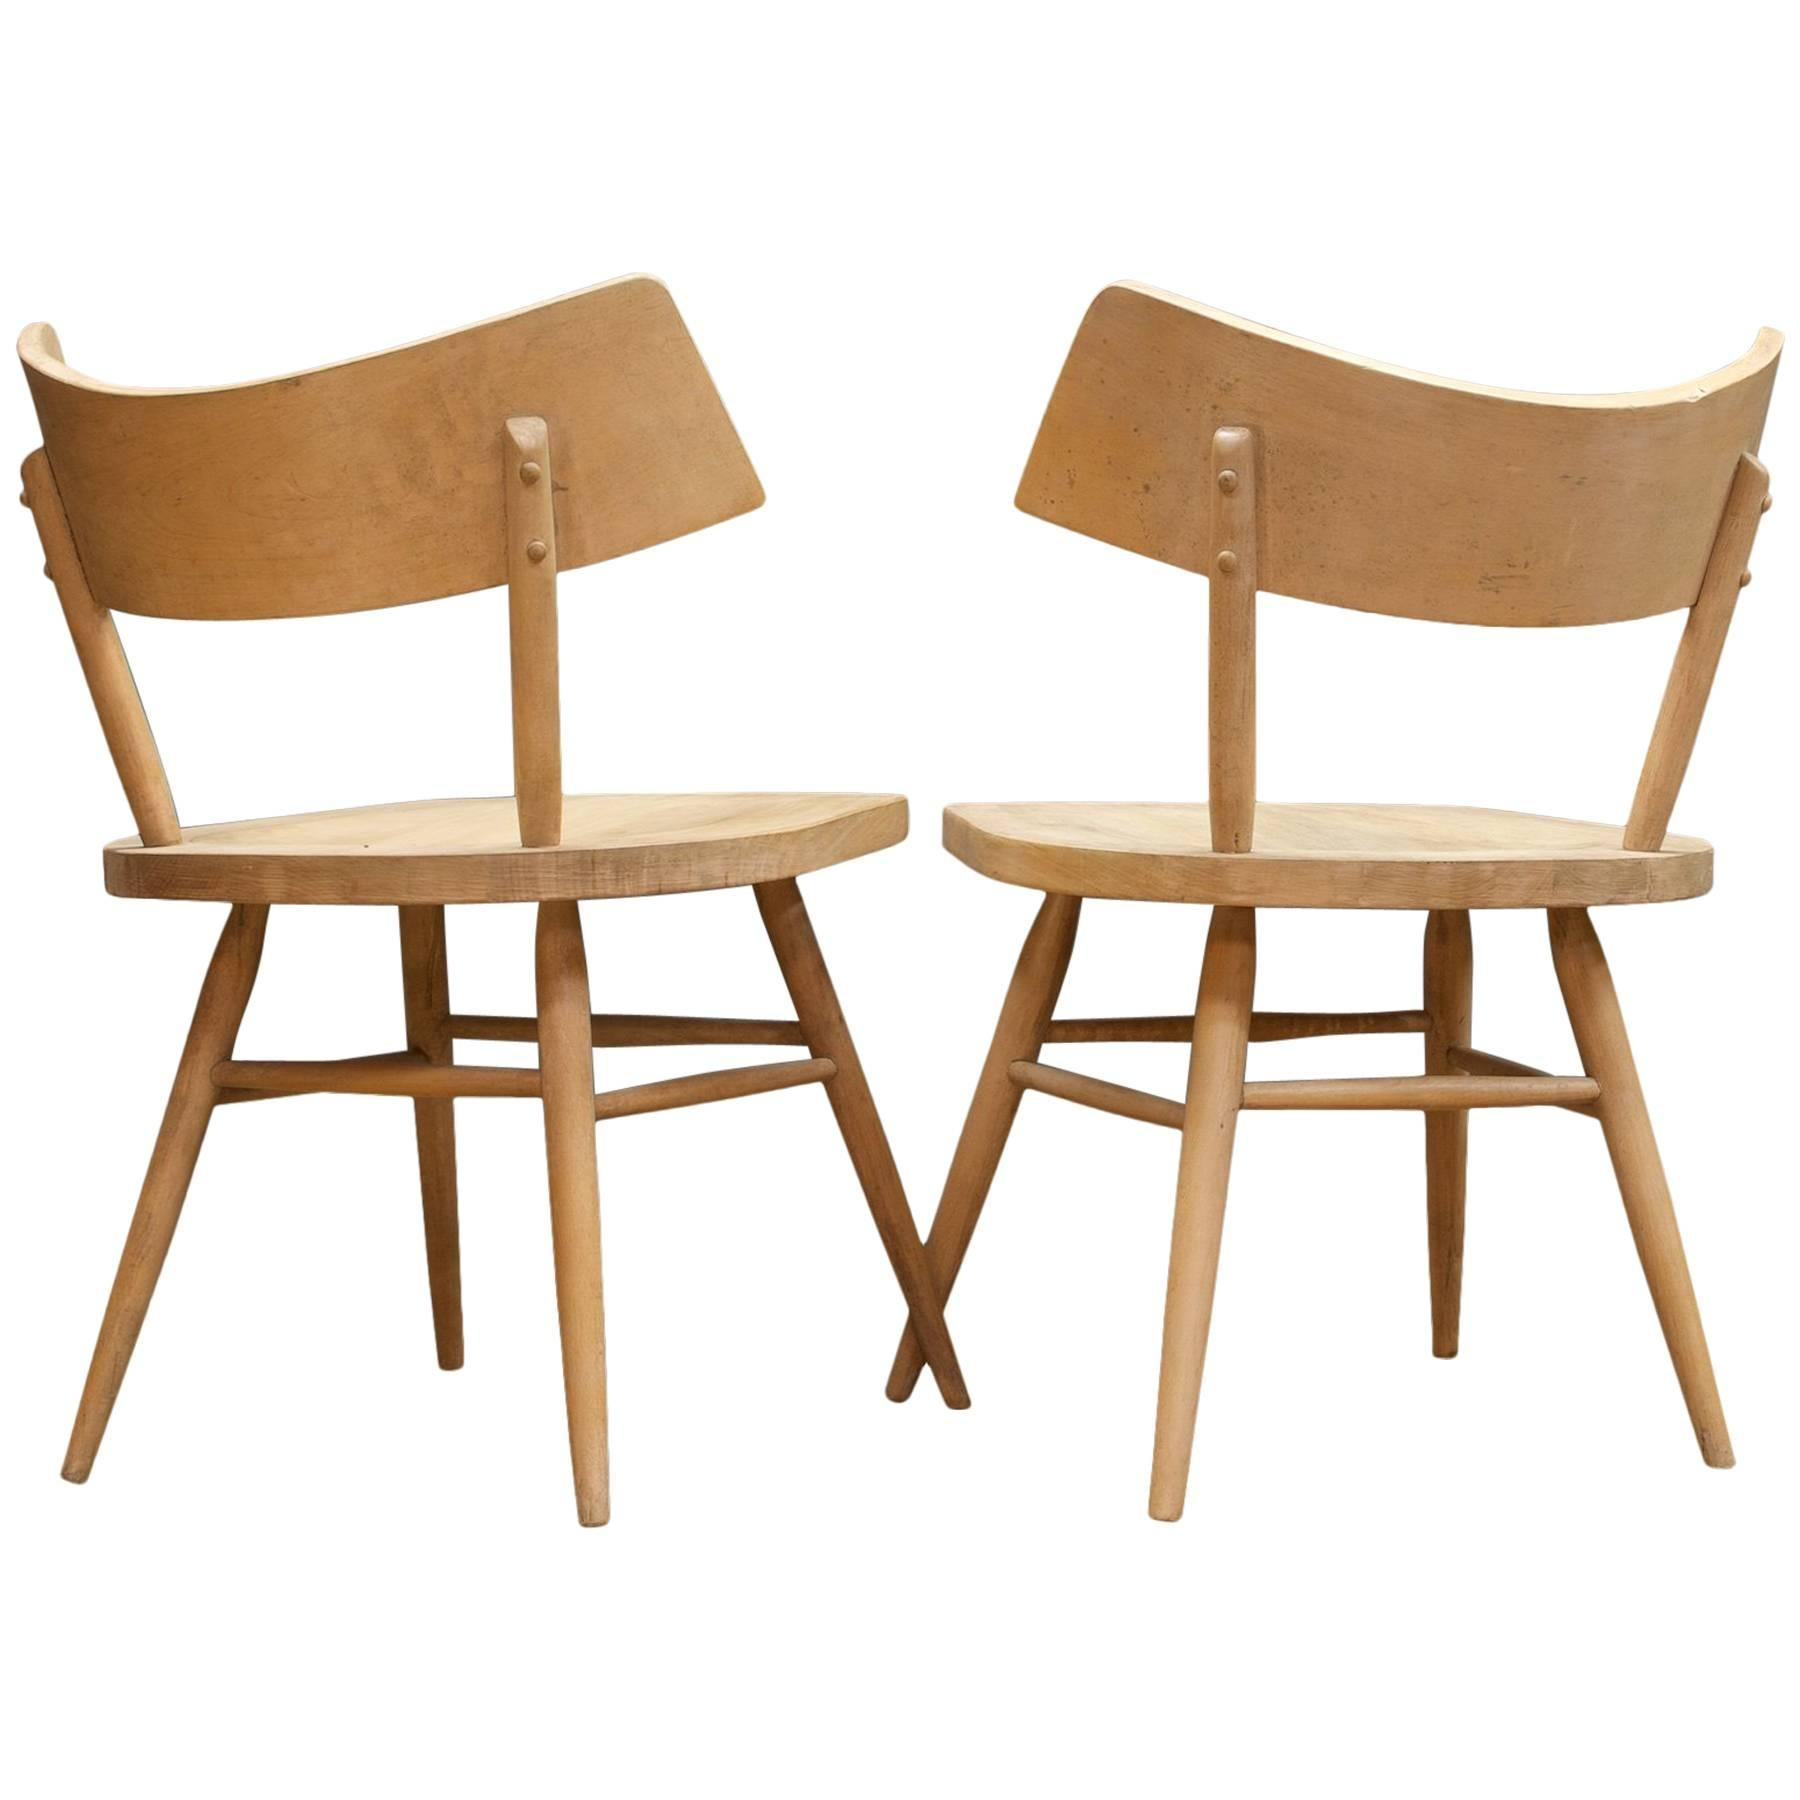 1950s Accent Chairs.1950s Edmond Spence Swedish Origami Bat Wing Accent Chairs Pair Of Architects